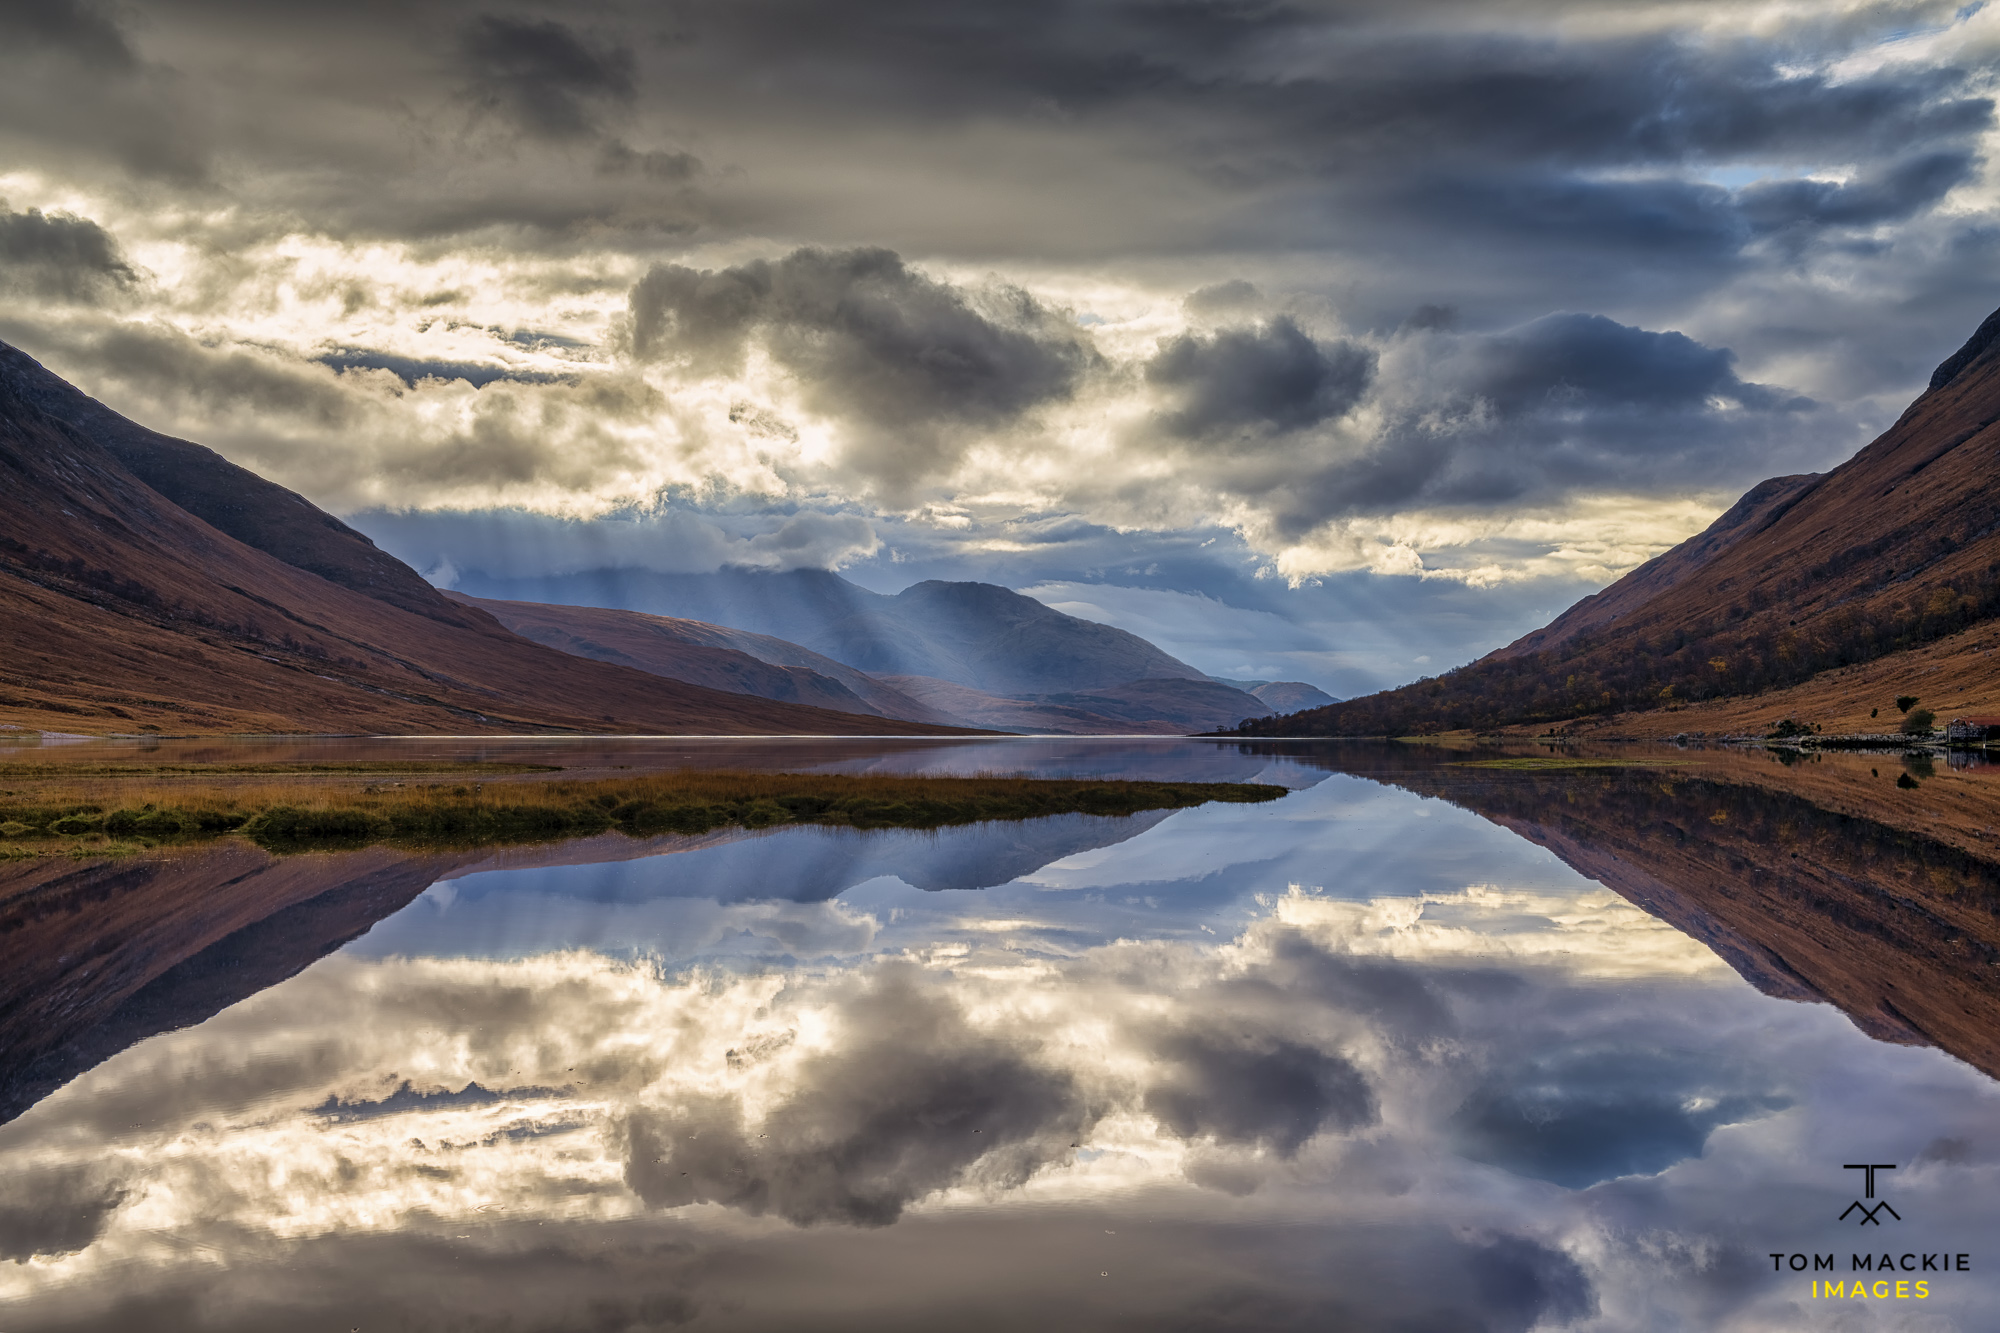 Loch Etive Reflections, Highlands, Scotland